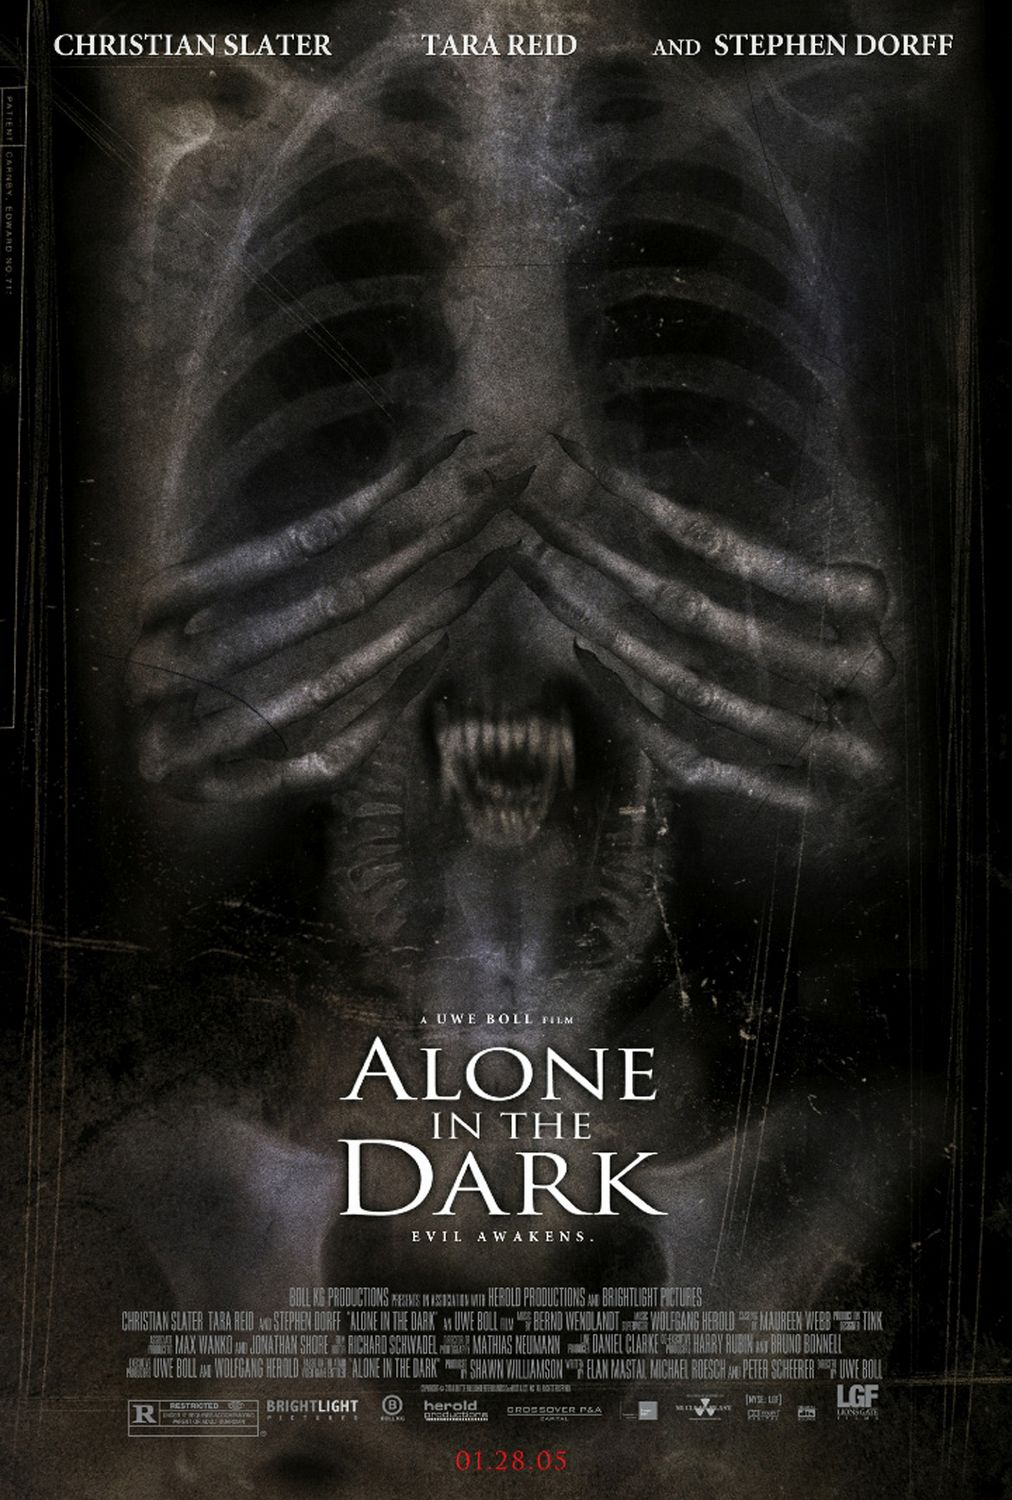 alone_in_the_dark_poster_2005_01.jpg